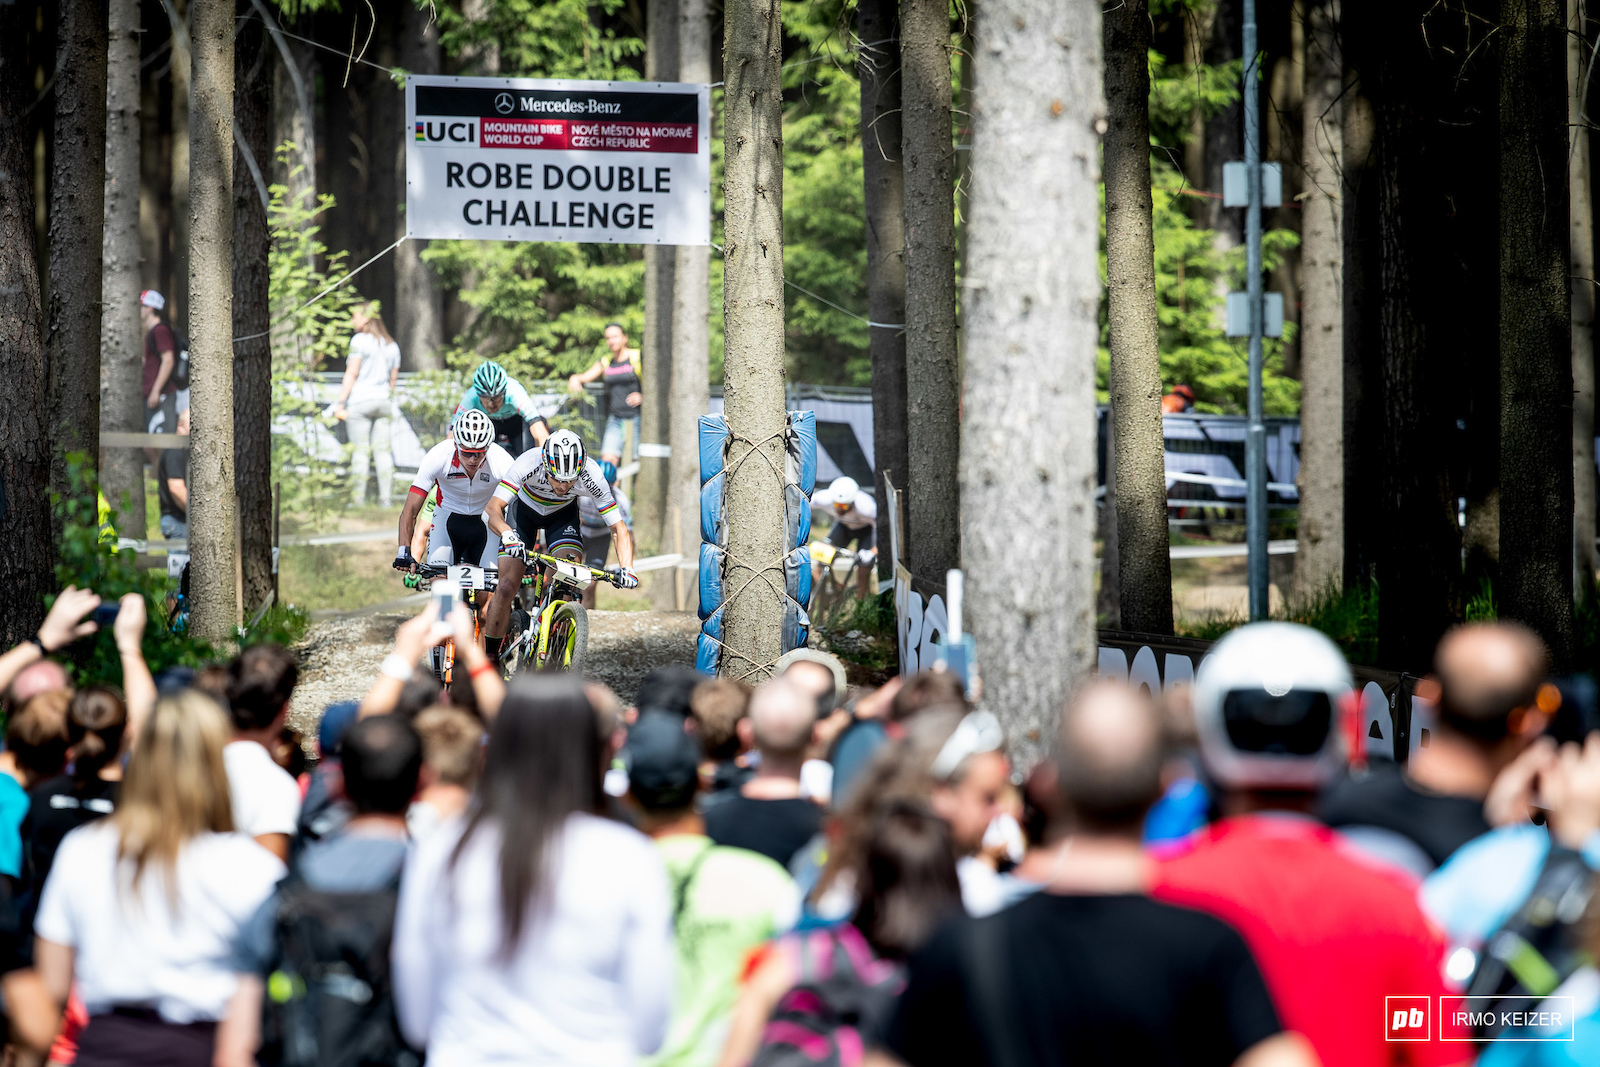 Schurter took the lead right away.